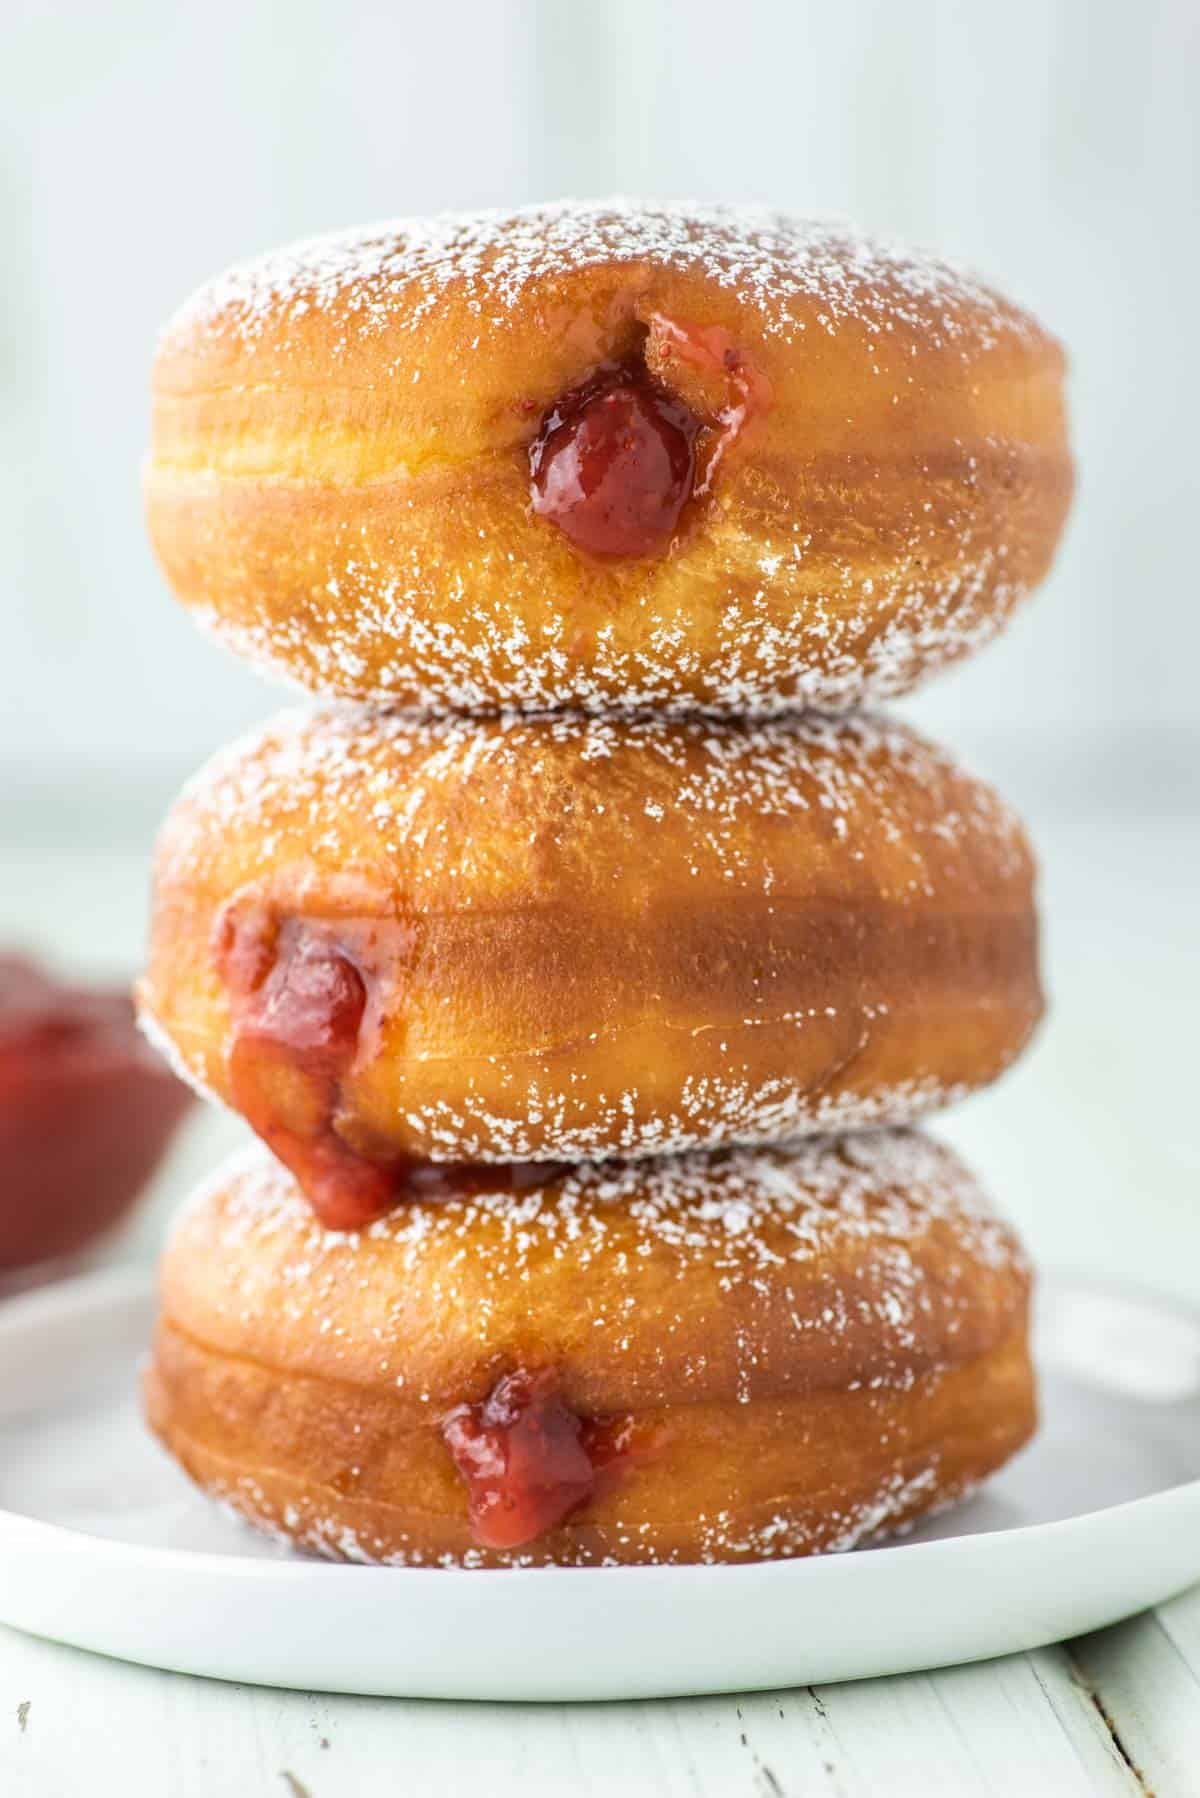 3 berliner donuts stacked on top of each other